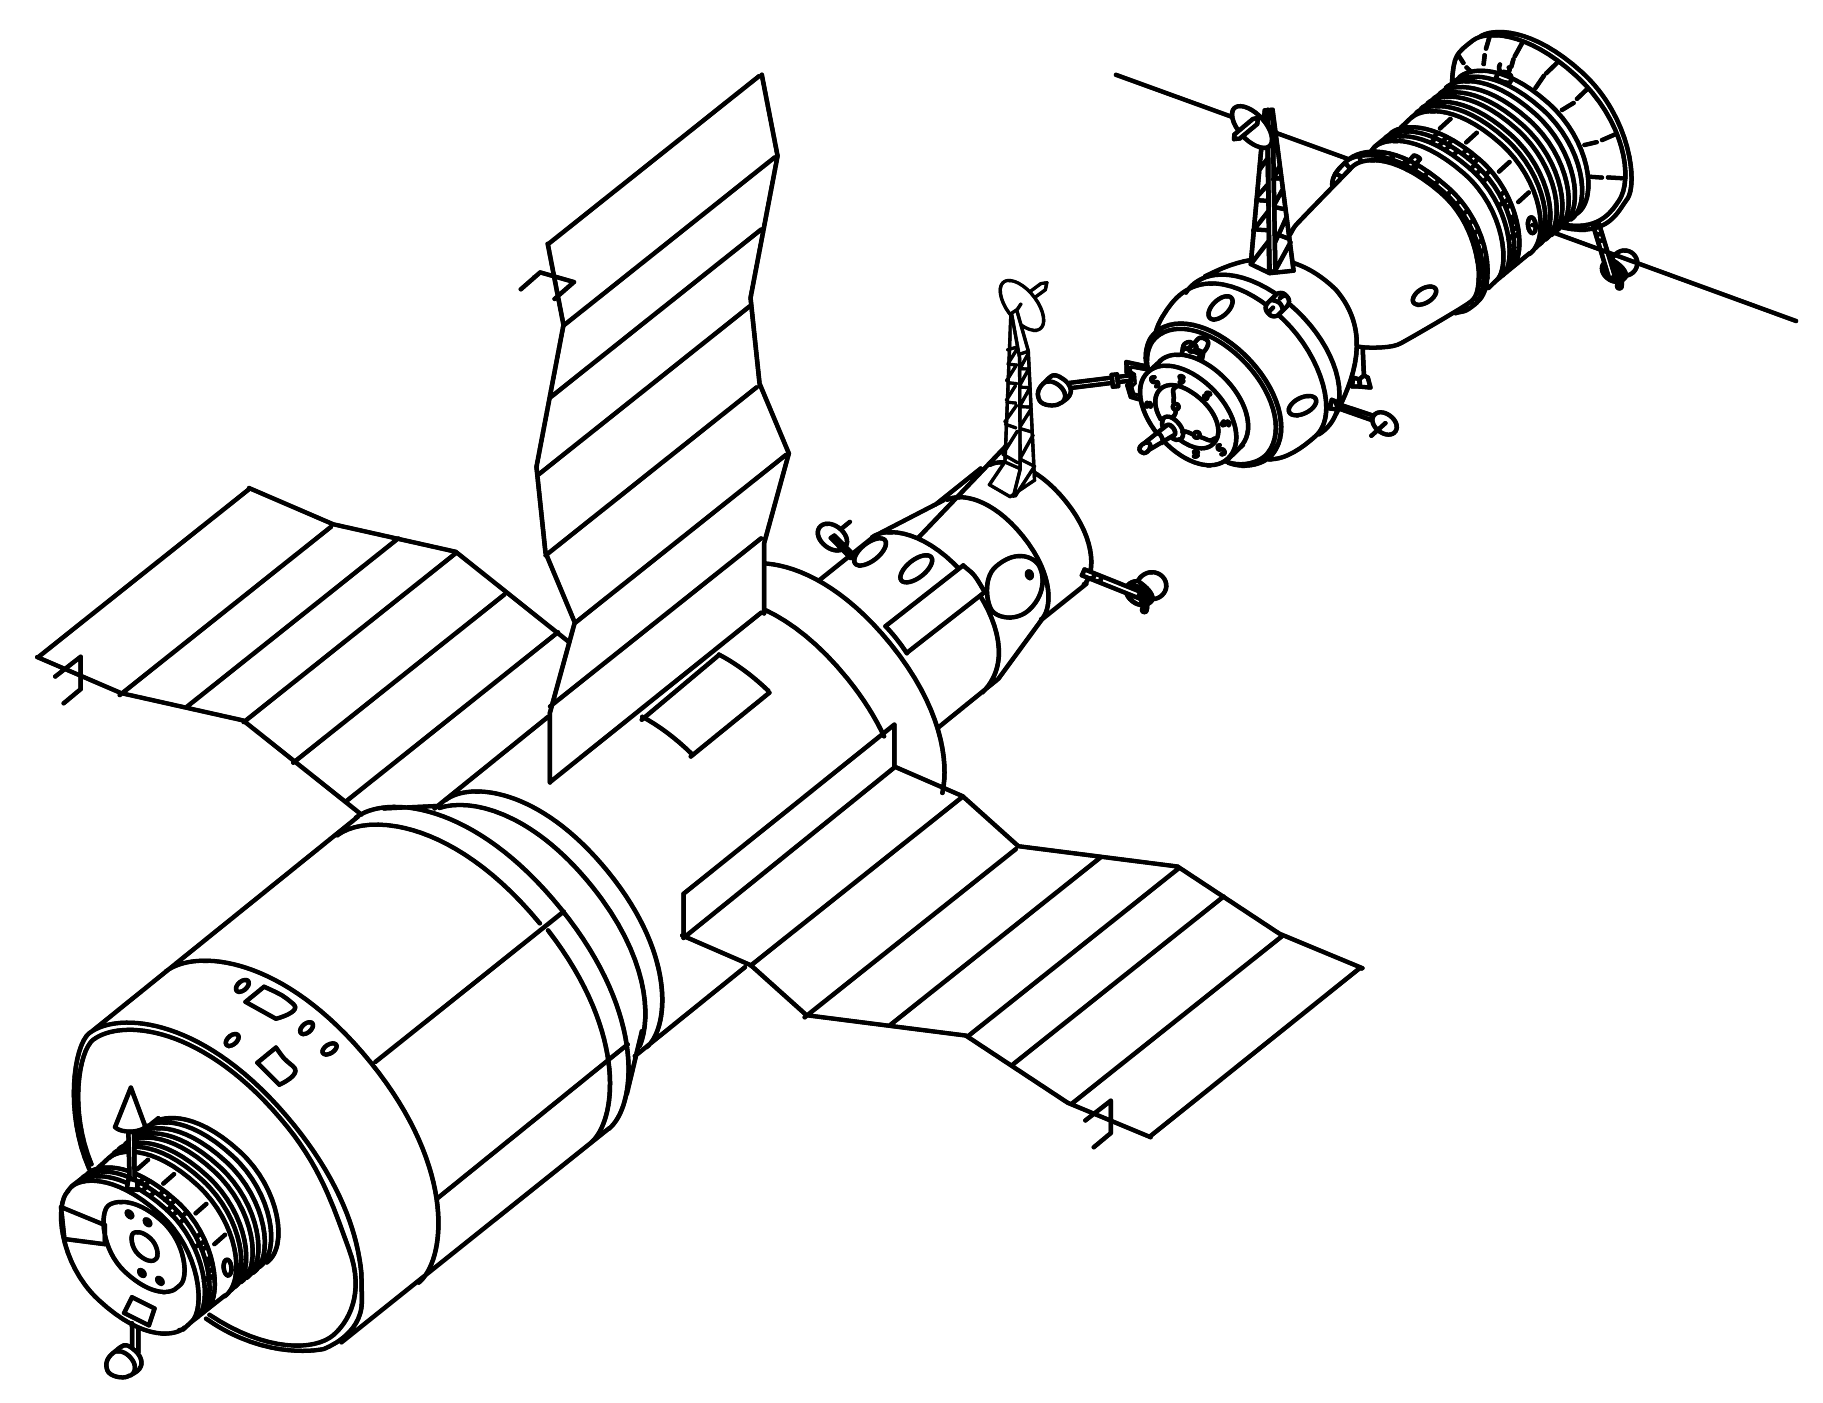 Fichier Salyut 4 And Soyuz Drawing